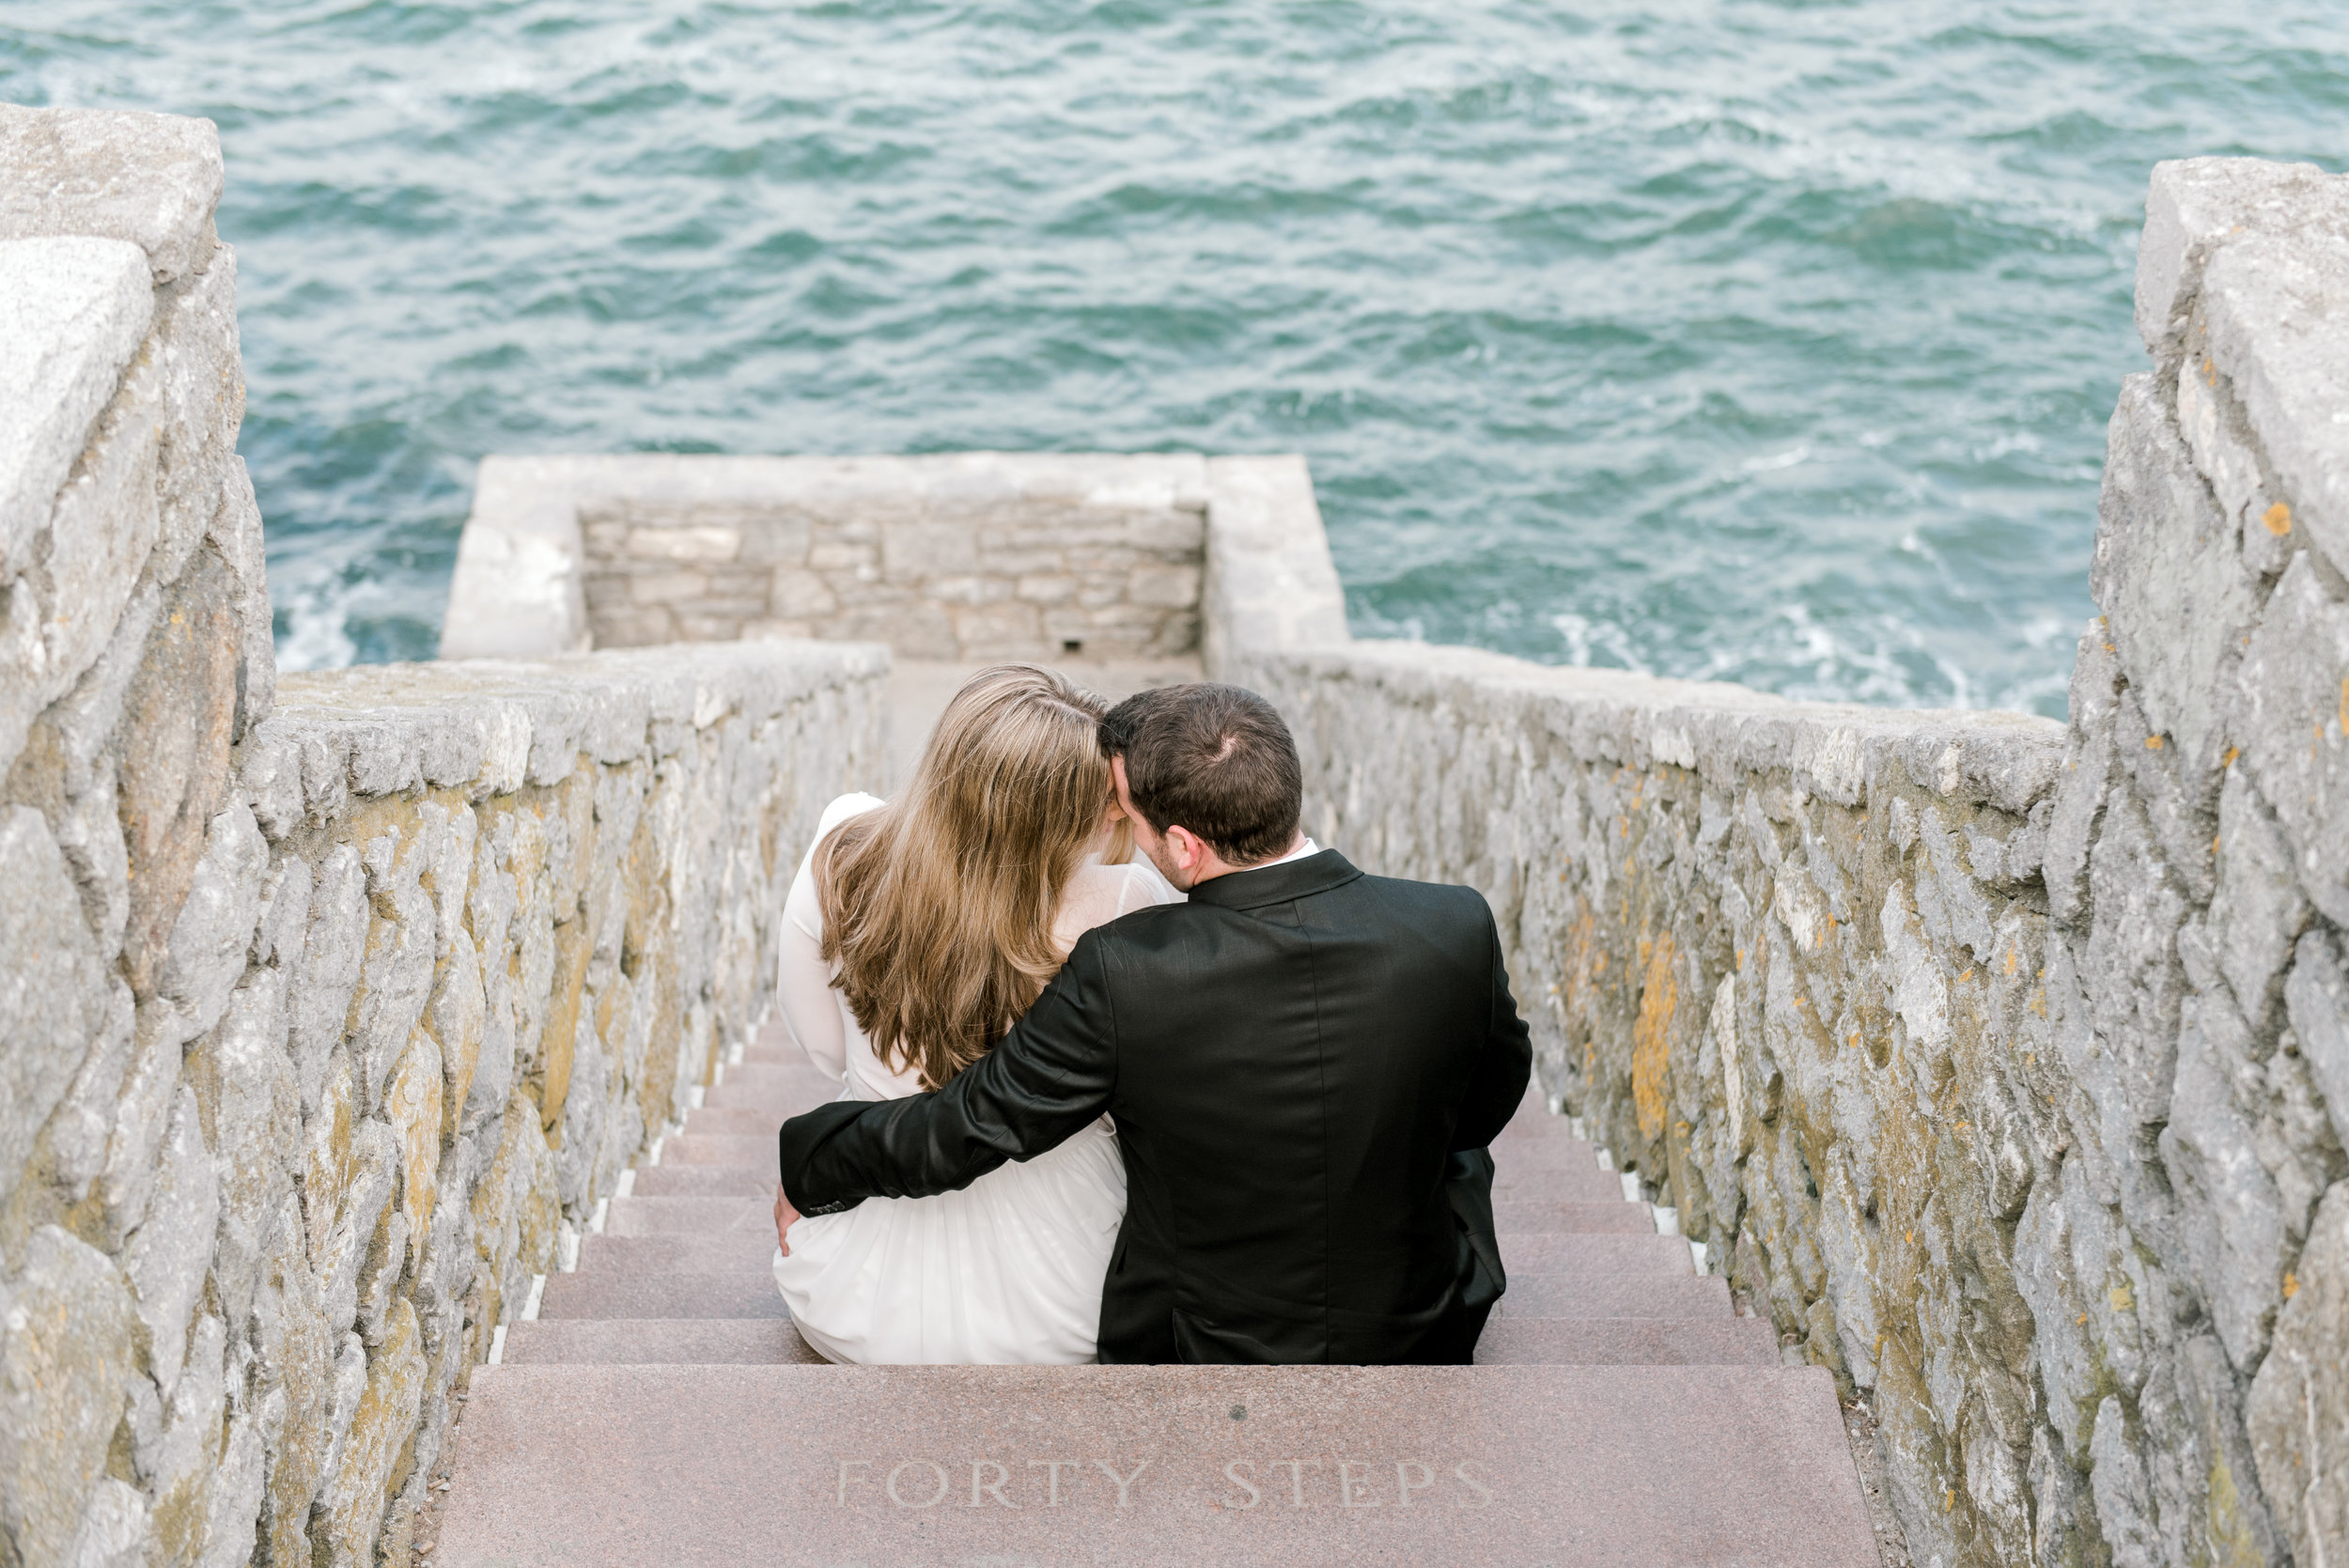 heather_and_connor_engagement-4.jpg